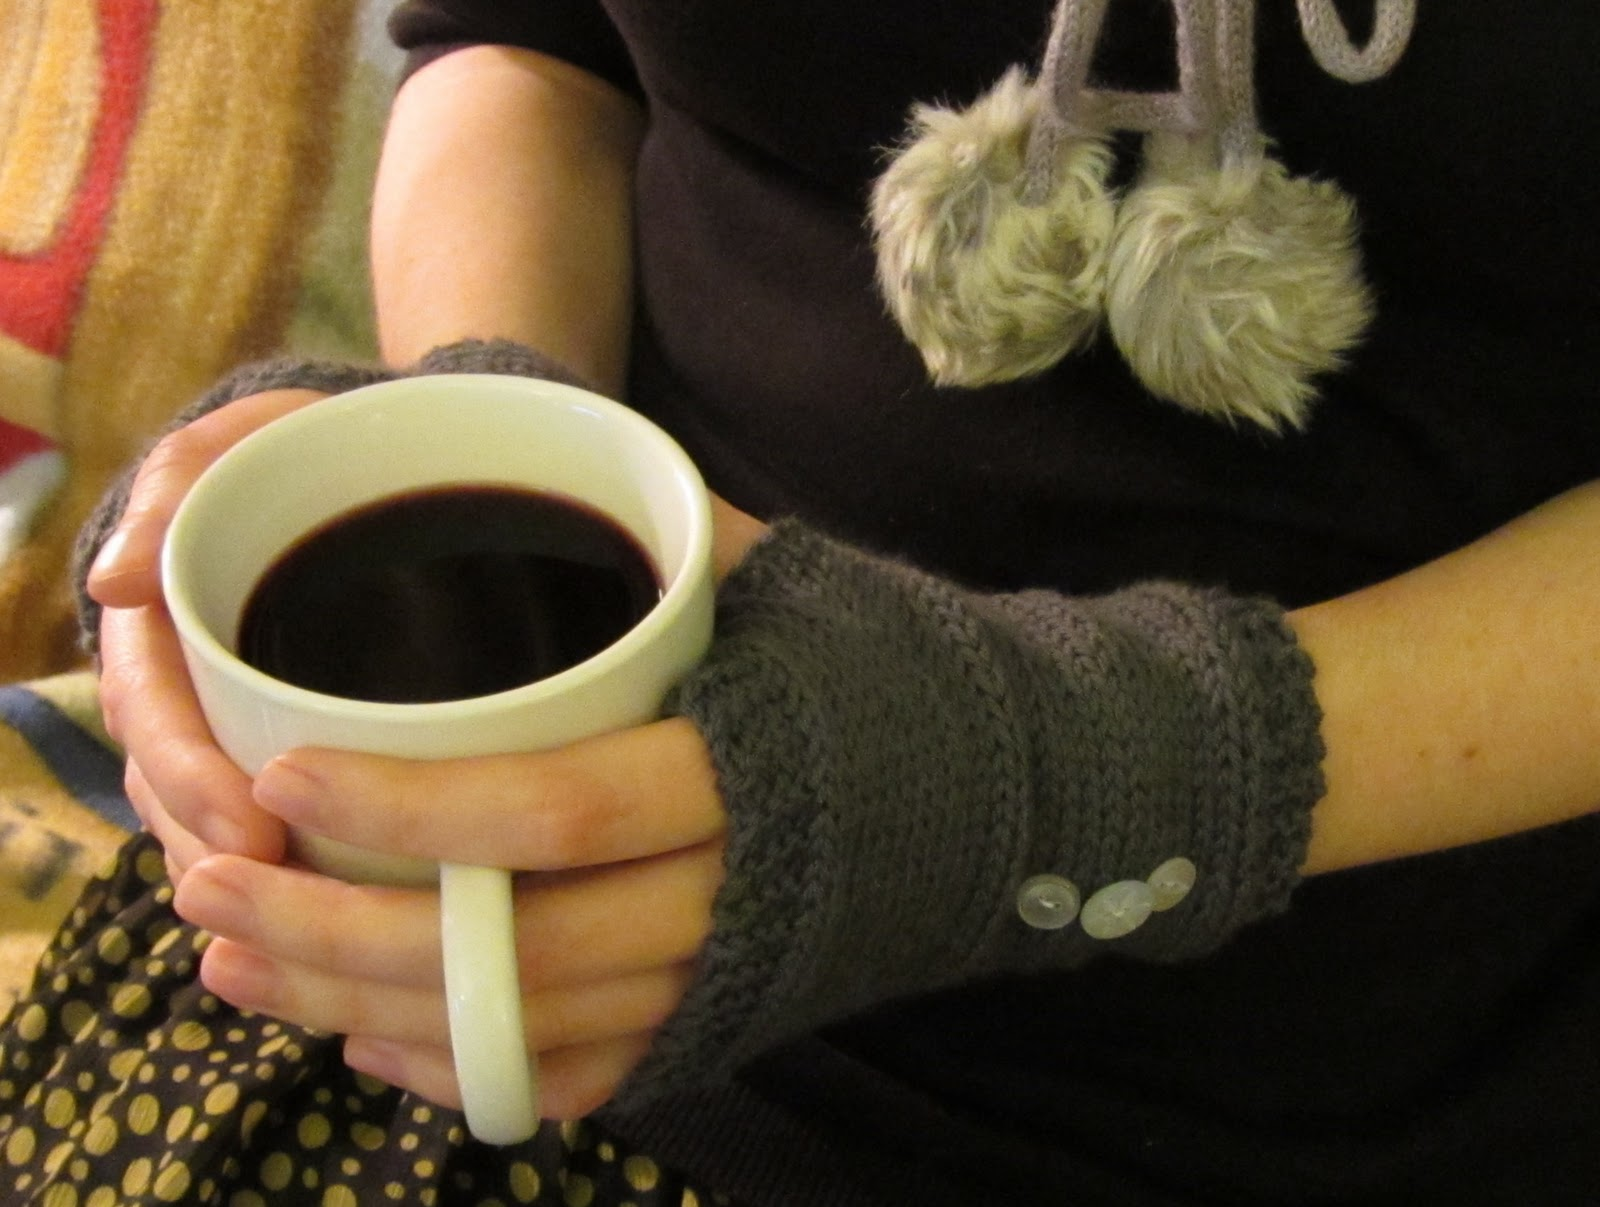 Easy Knitting Pattern Hand Warmers : Knitted Hand Warmers ~ Crafty Weekend: Craft projects for ...